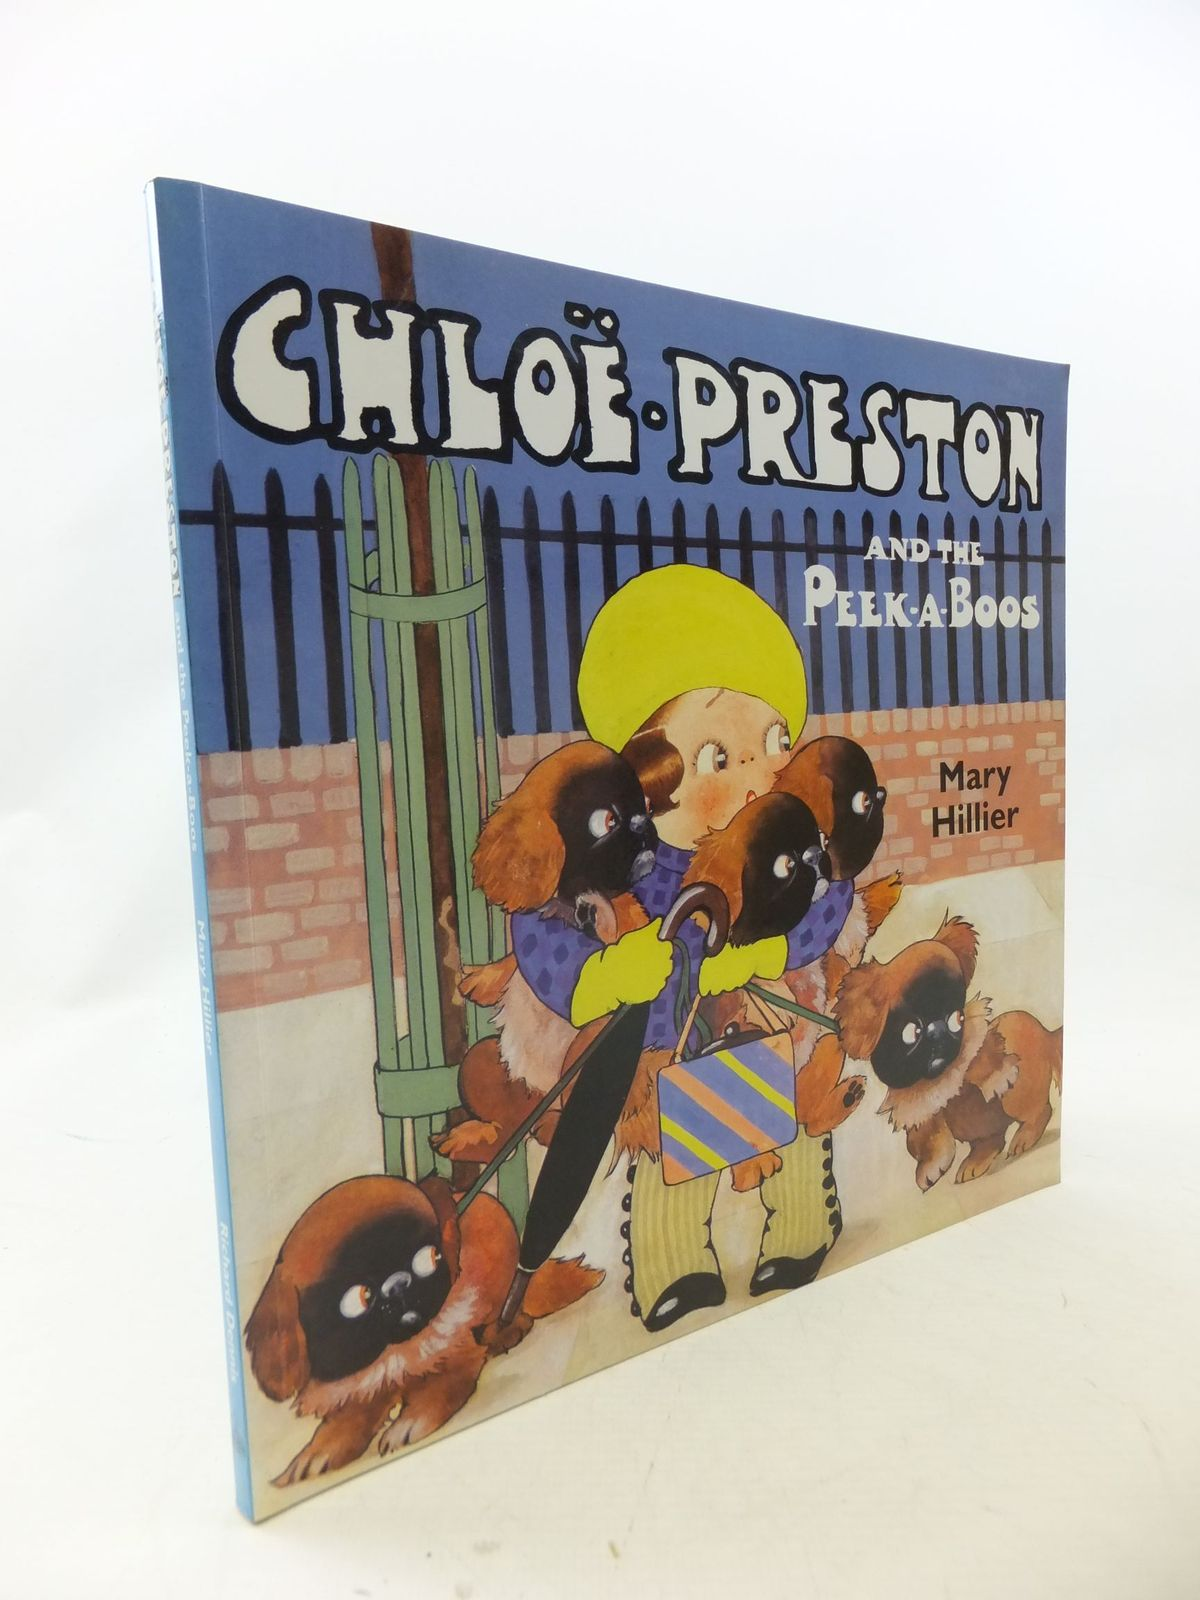 Photo of CHLOE PRESTON AND THE PEEK-A-BOOS written by Hillier, Mary illustrated by Preston, Chloe published by Richard Dennis (STOCK CODE: 1109443)  for sale by Stella & Rose's Books